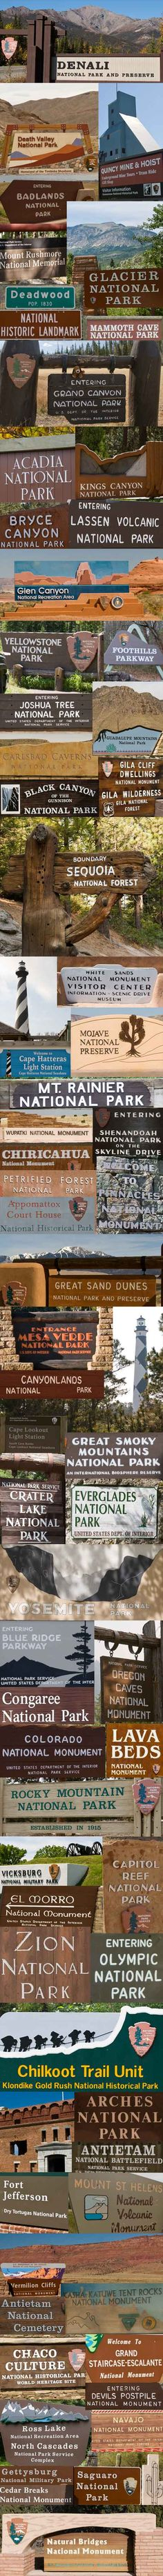 For National Parks week here's some NPS inspiration... a collage of parks signs of 68 of the 123 NPS sites we've visited on our Journey.